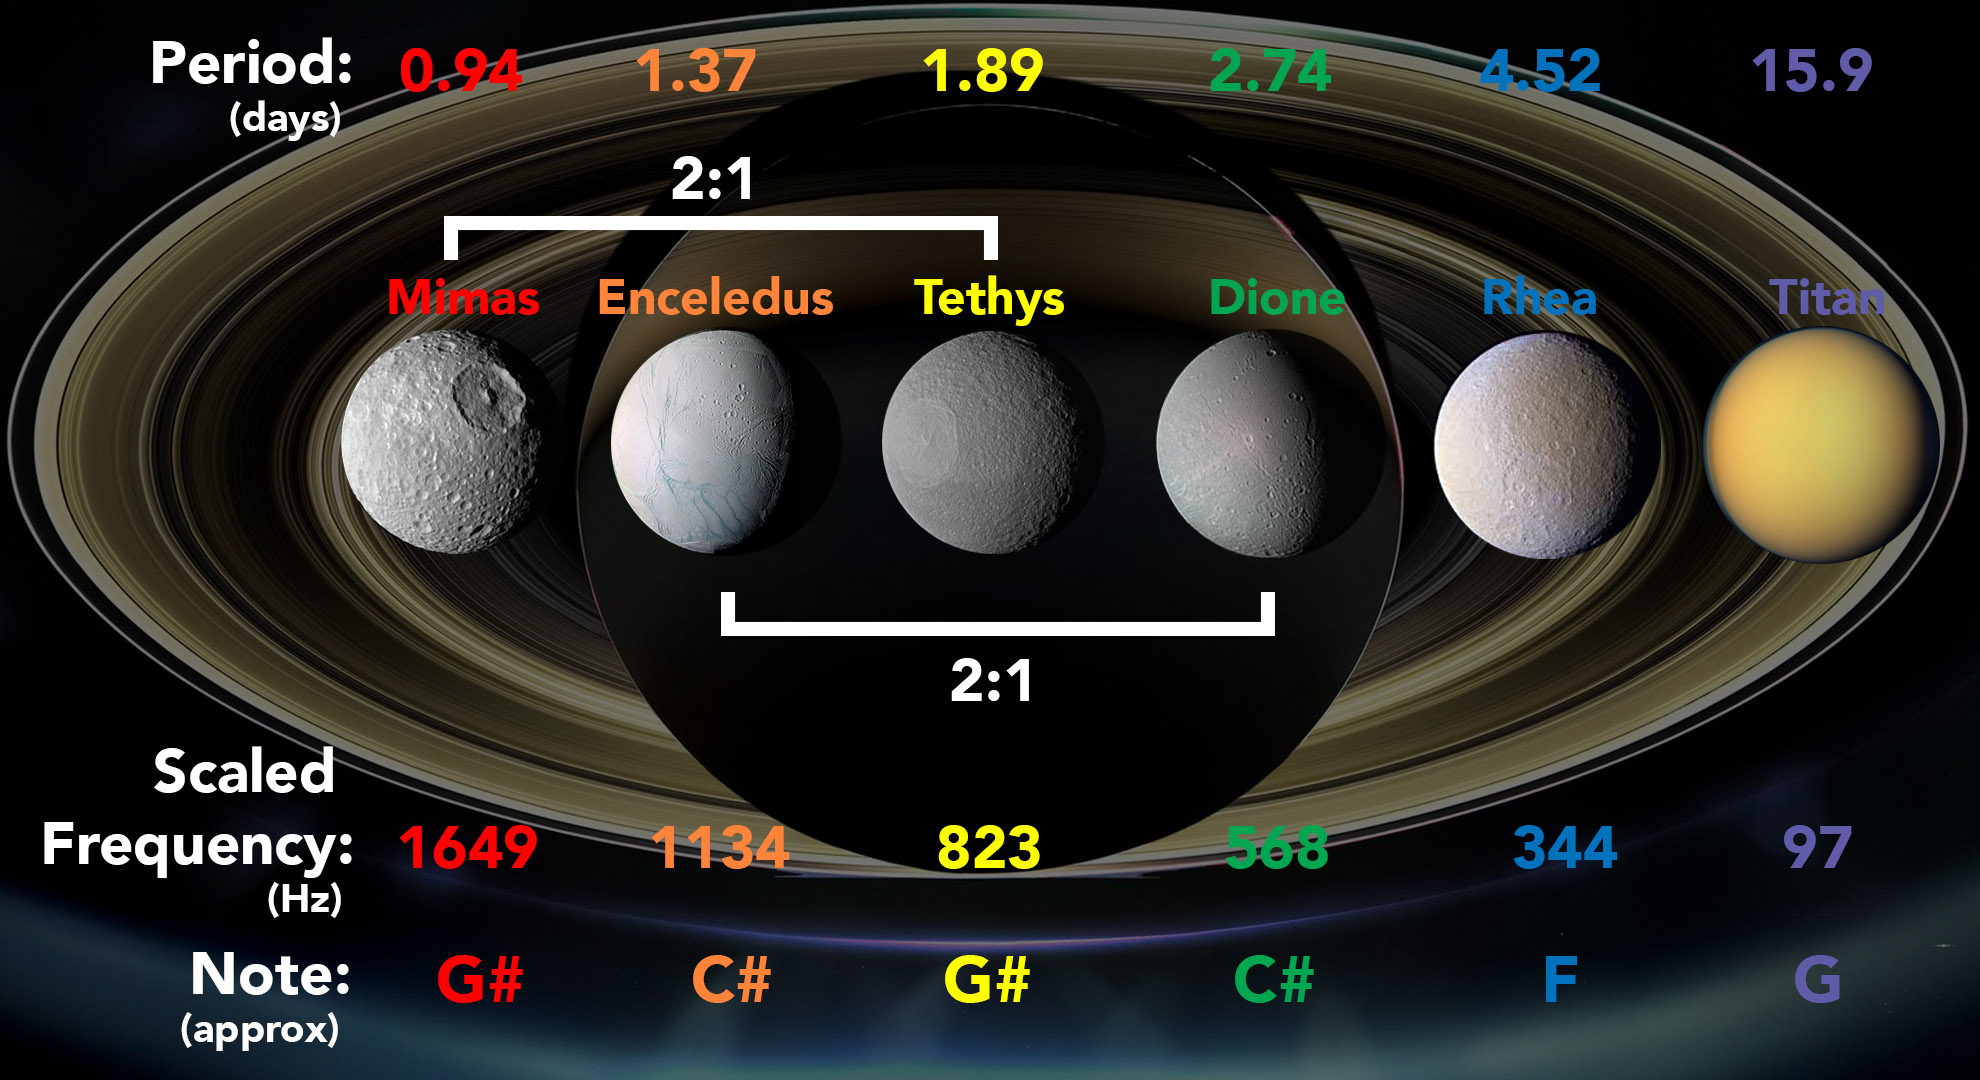 The orbital periods, scaled frequencies, and musical notes of Saturn's major moons. The frequencies have been increased by 27 octaves from their true values so they can be heard by human ears. (Credit: SYSTEM Sounds/NASA/JPL-Caltech/Elisabetta Bonora/Marco Faccin)